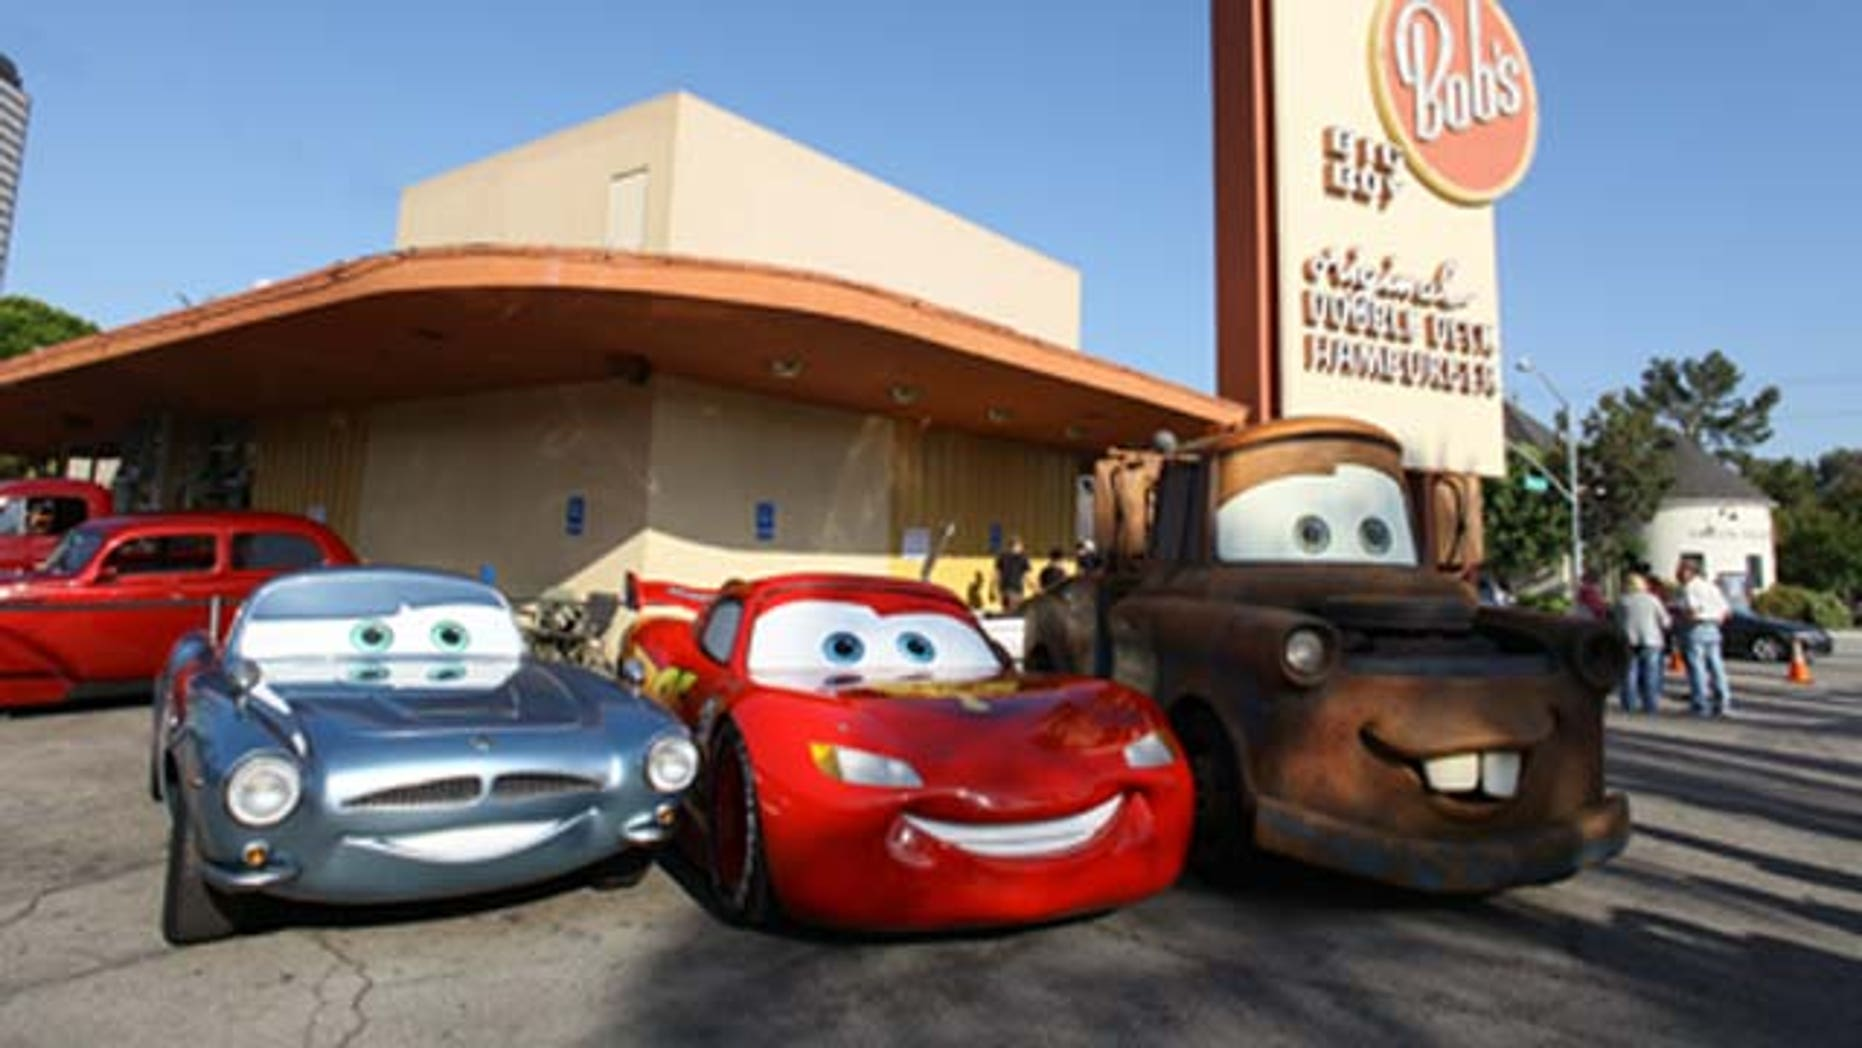 June 17, 2011: British spy Finn McMissile, four-time Piston Cup champion Lightning McQueen and his best pal Mater (life-size remote controlled models based on the characters) from Disney and Pixar's 'Cars 2' roll into Bob's Big Boy for a pit stop in Burbank, Calif.